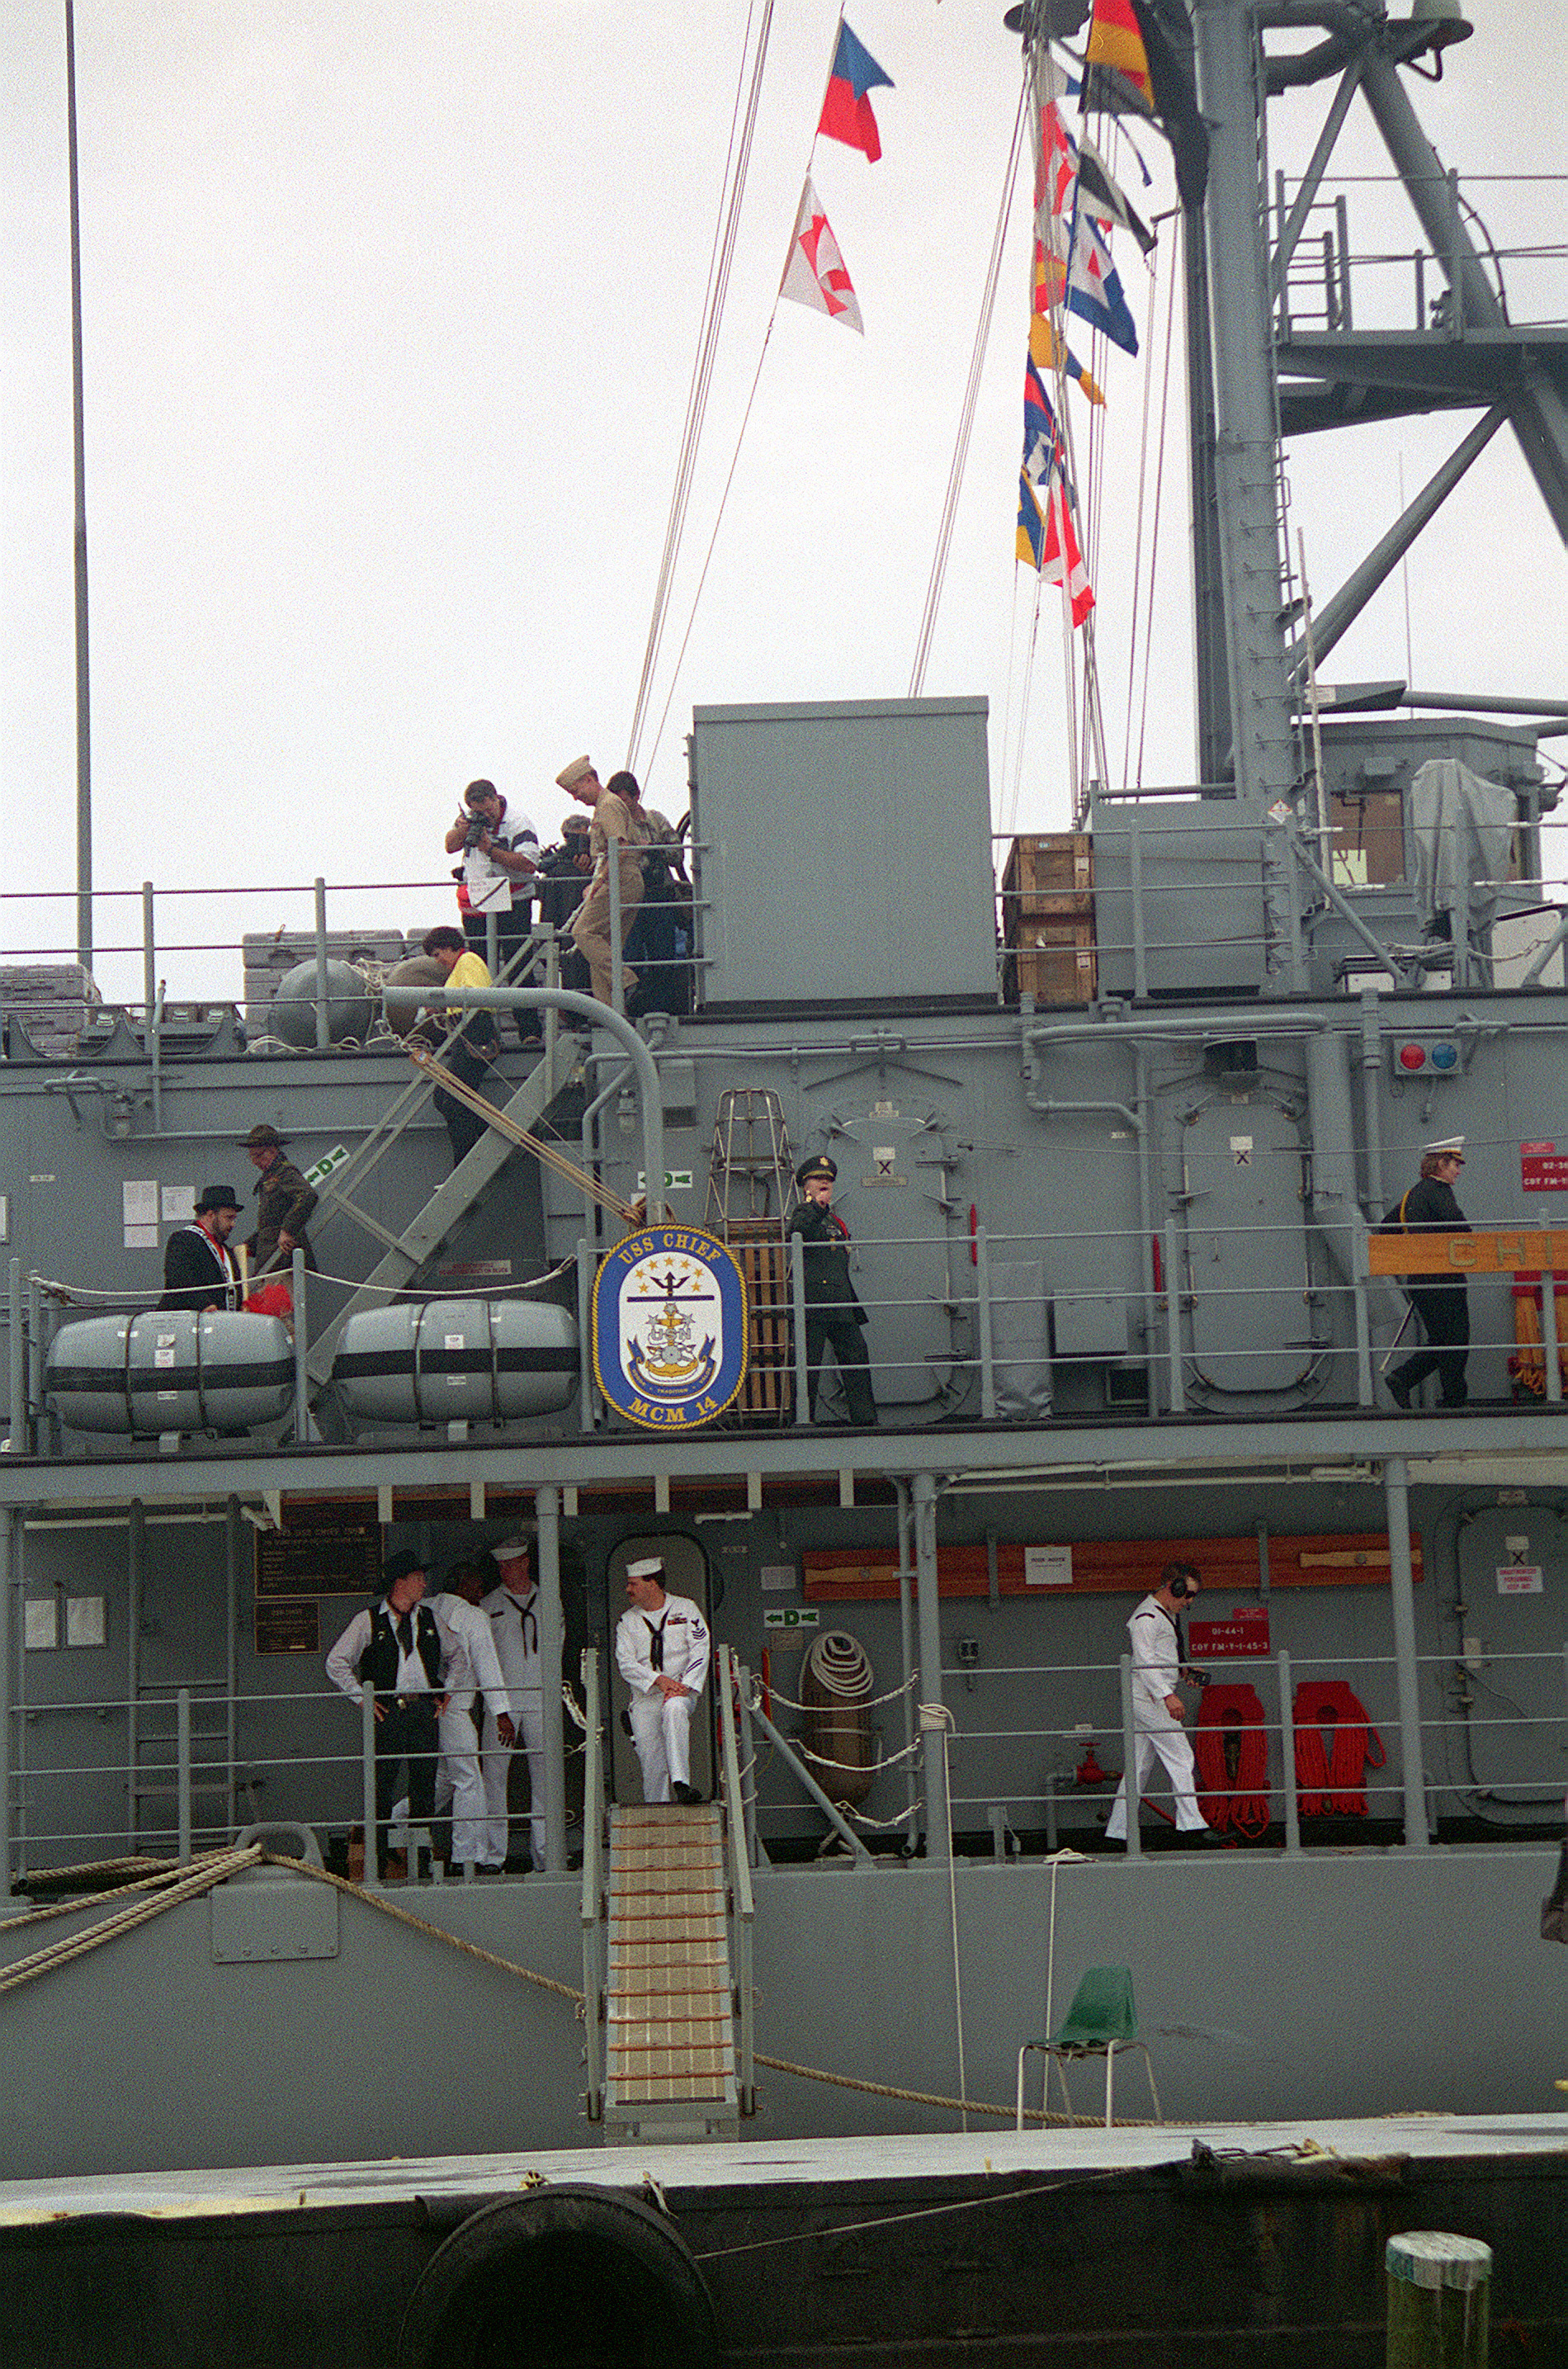 A starboard side view of the gangway to the mine counter measures ship USS CHIEF (MCM-14) during open house tours as part of Tamps's annual Gasparilla celebration; a mock pirate invasion of the city by the Ybor Navy